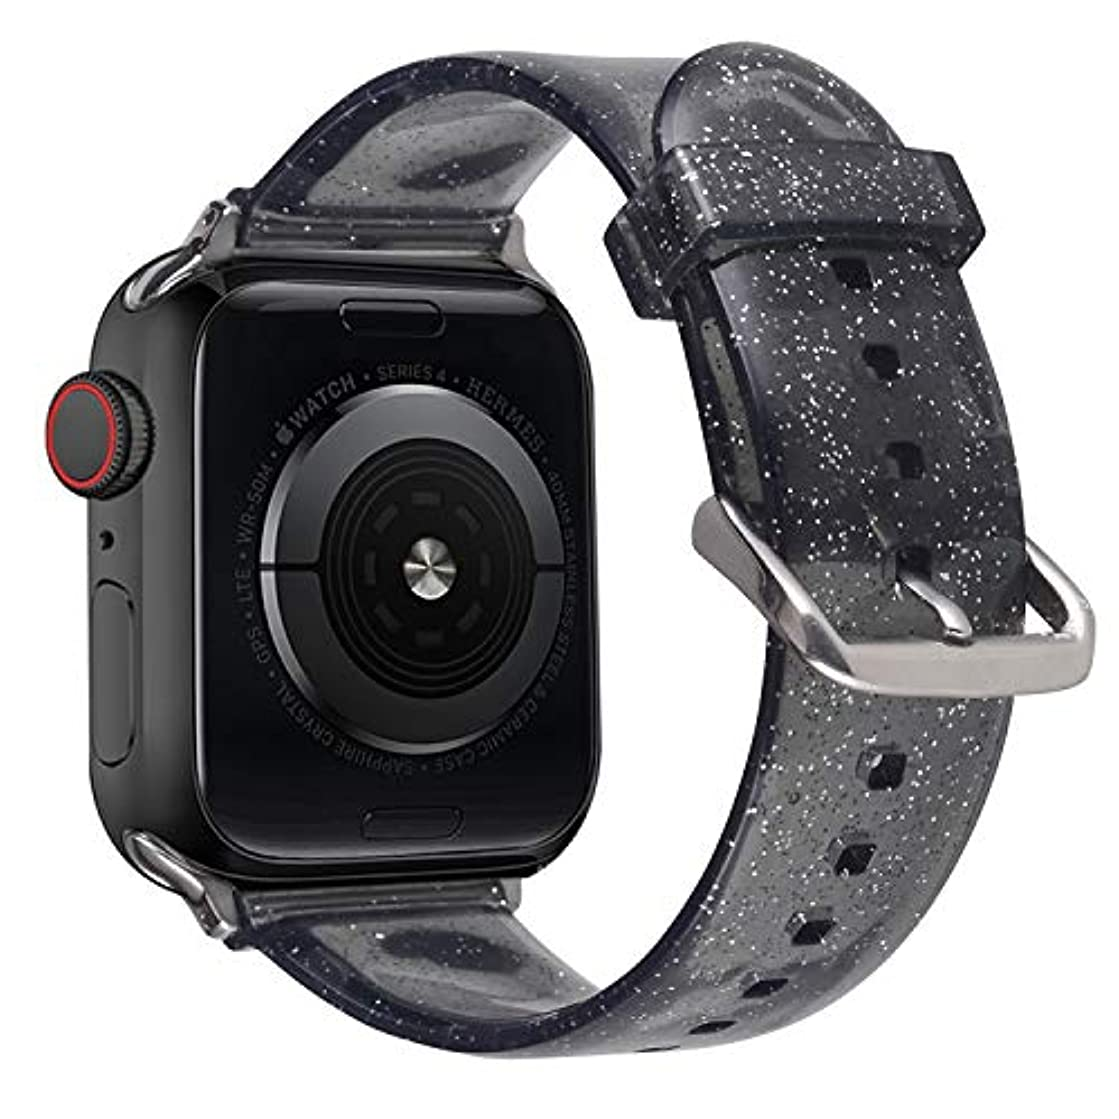 Wolait Compatible with Apple Watch Band 38mm 40mm, Premium Clear Glitter Soft Silicone Bracelet for iWatch Series 4 Series 3 Series 2 Series 1 Women Girls (38mm/40mm Black+Silver)